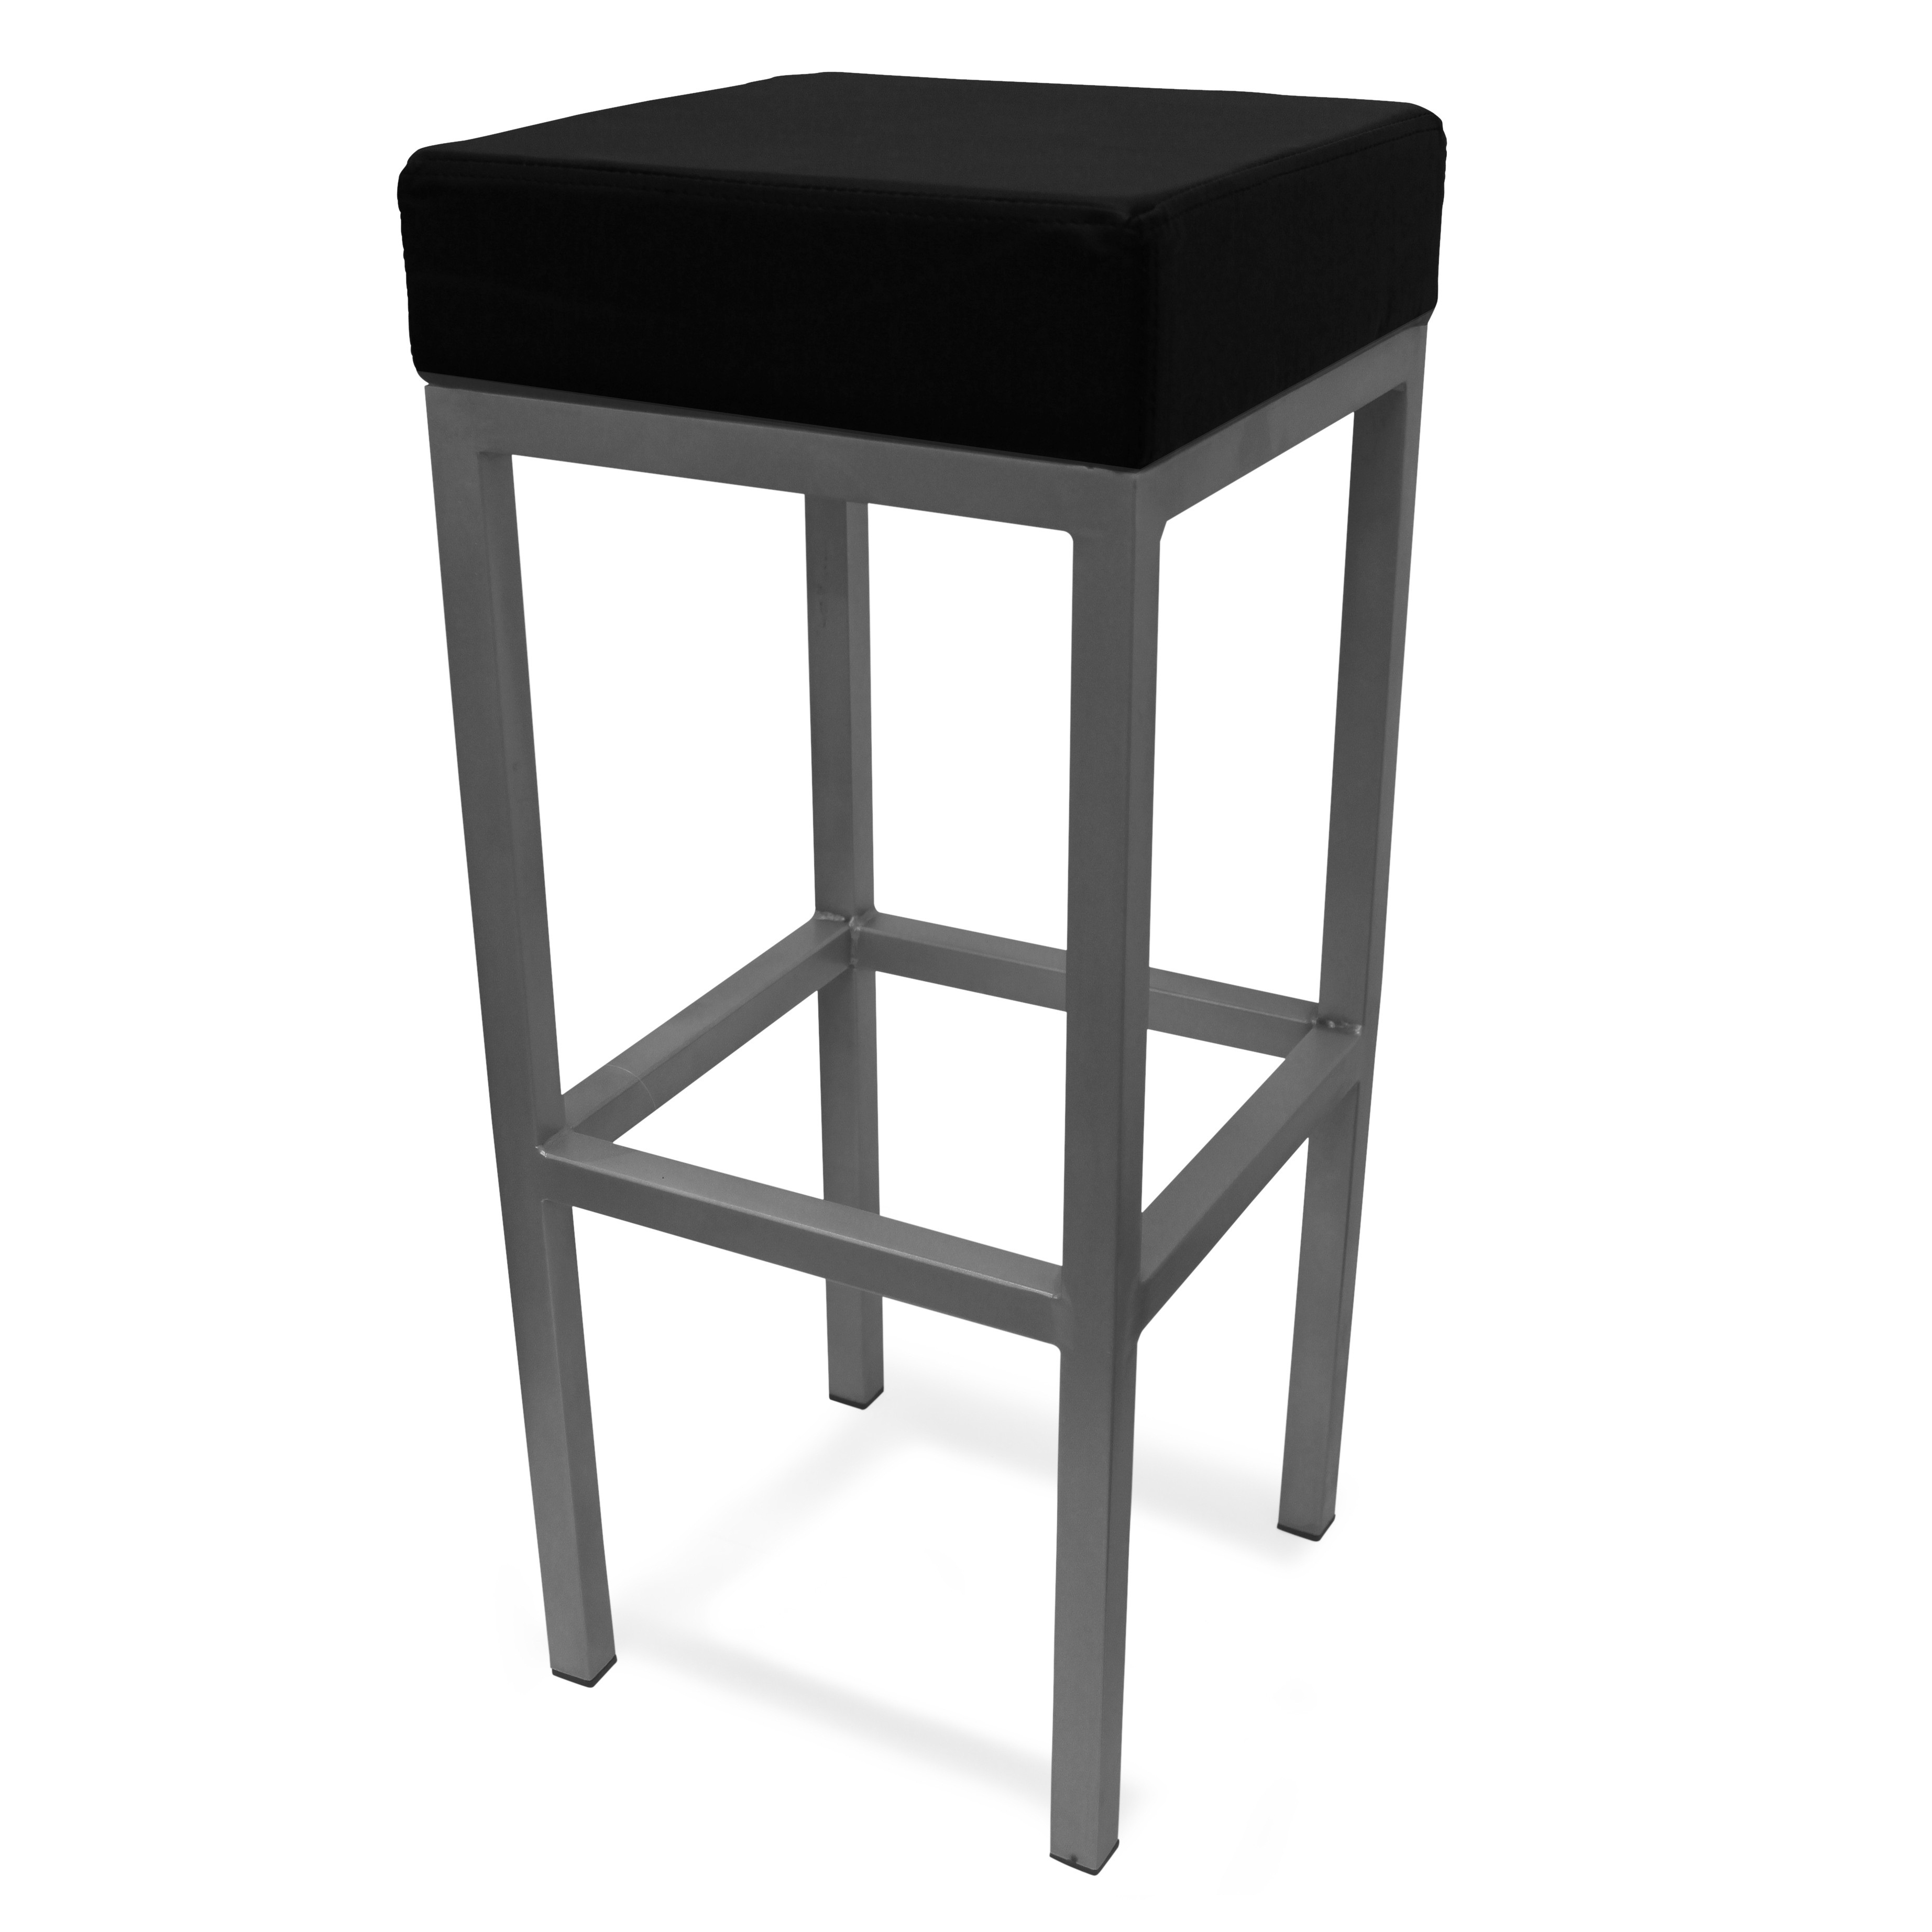 No.1 Best Selling Product In This Category: Cube Bar Stool Black